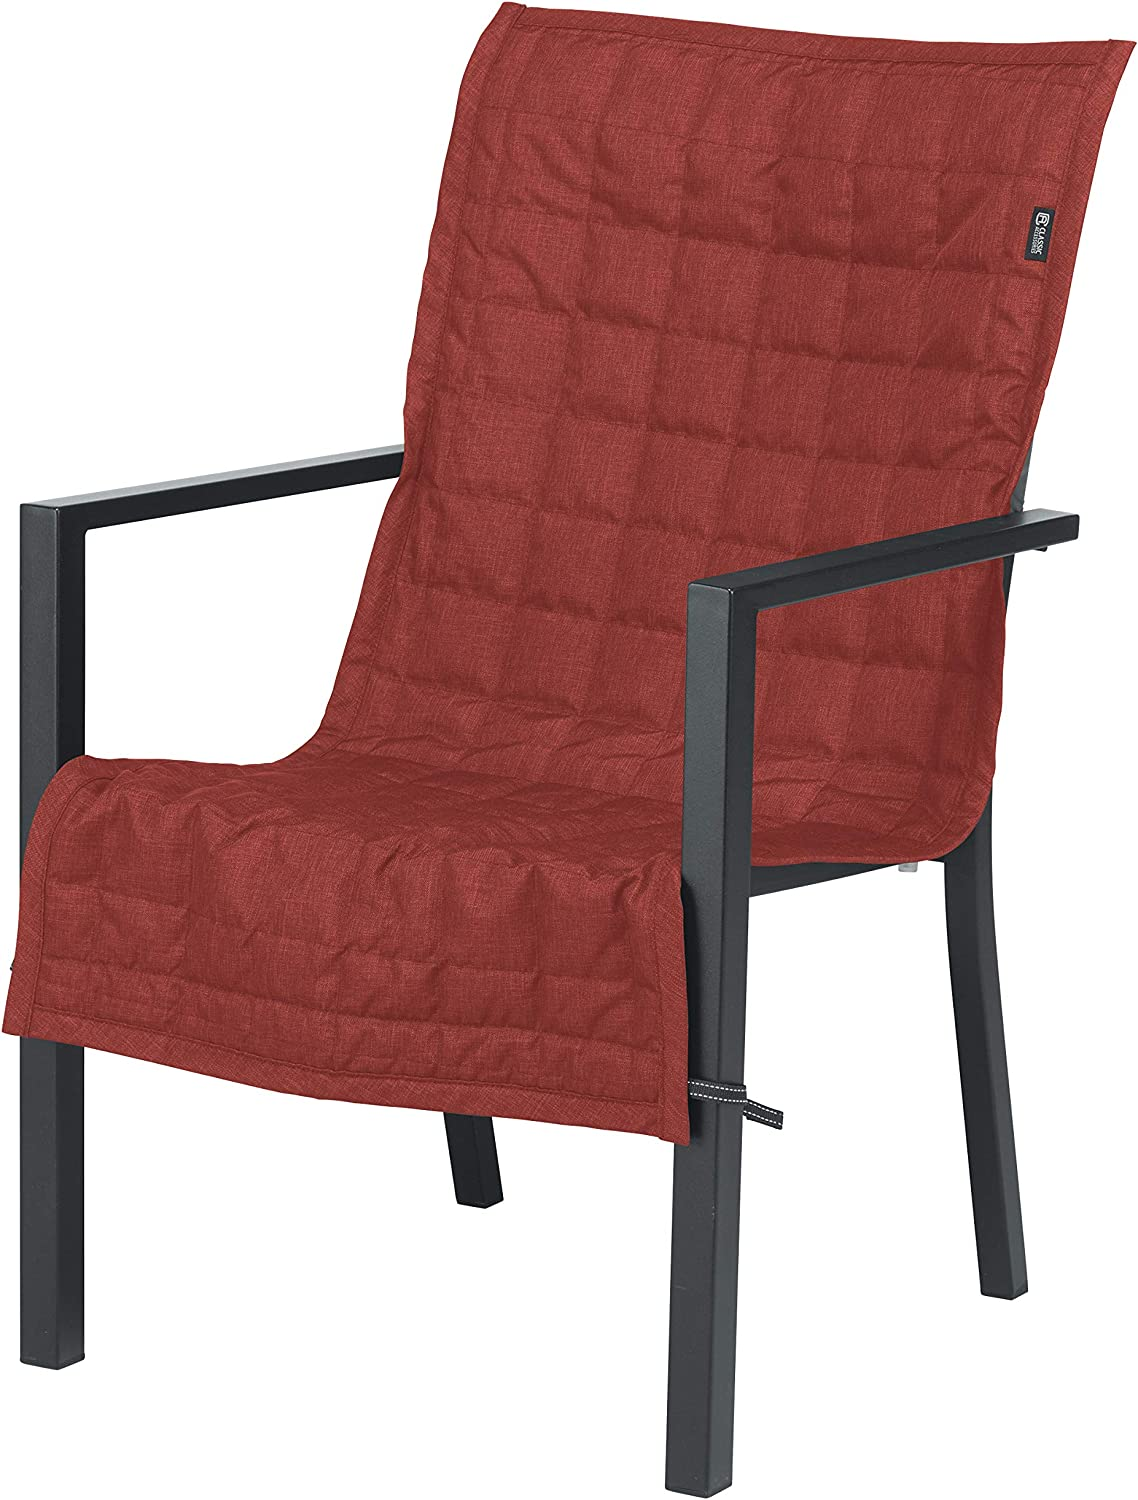 Classic Accessories Montlake Water-Resistant 45 Inch Patio Chair Slipcover, Heather Henna